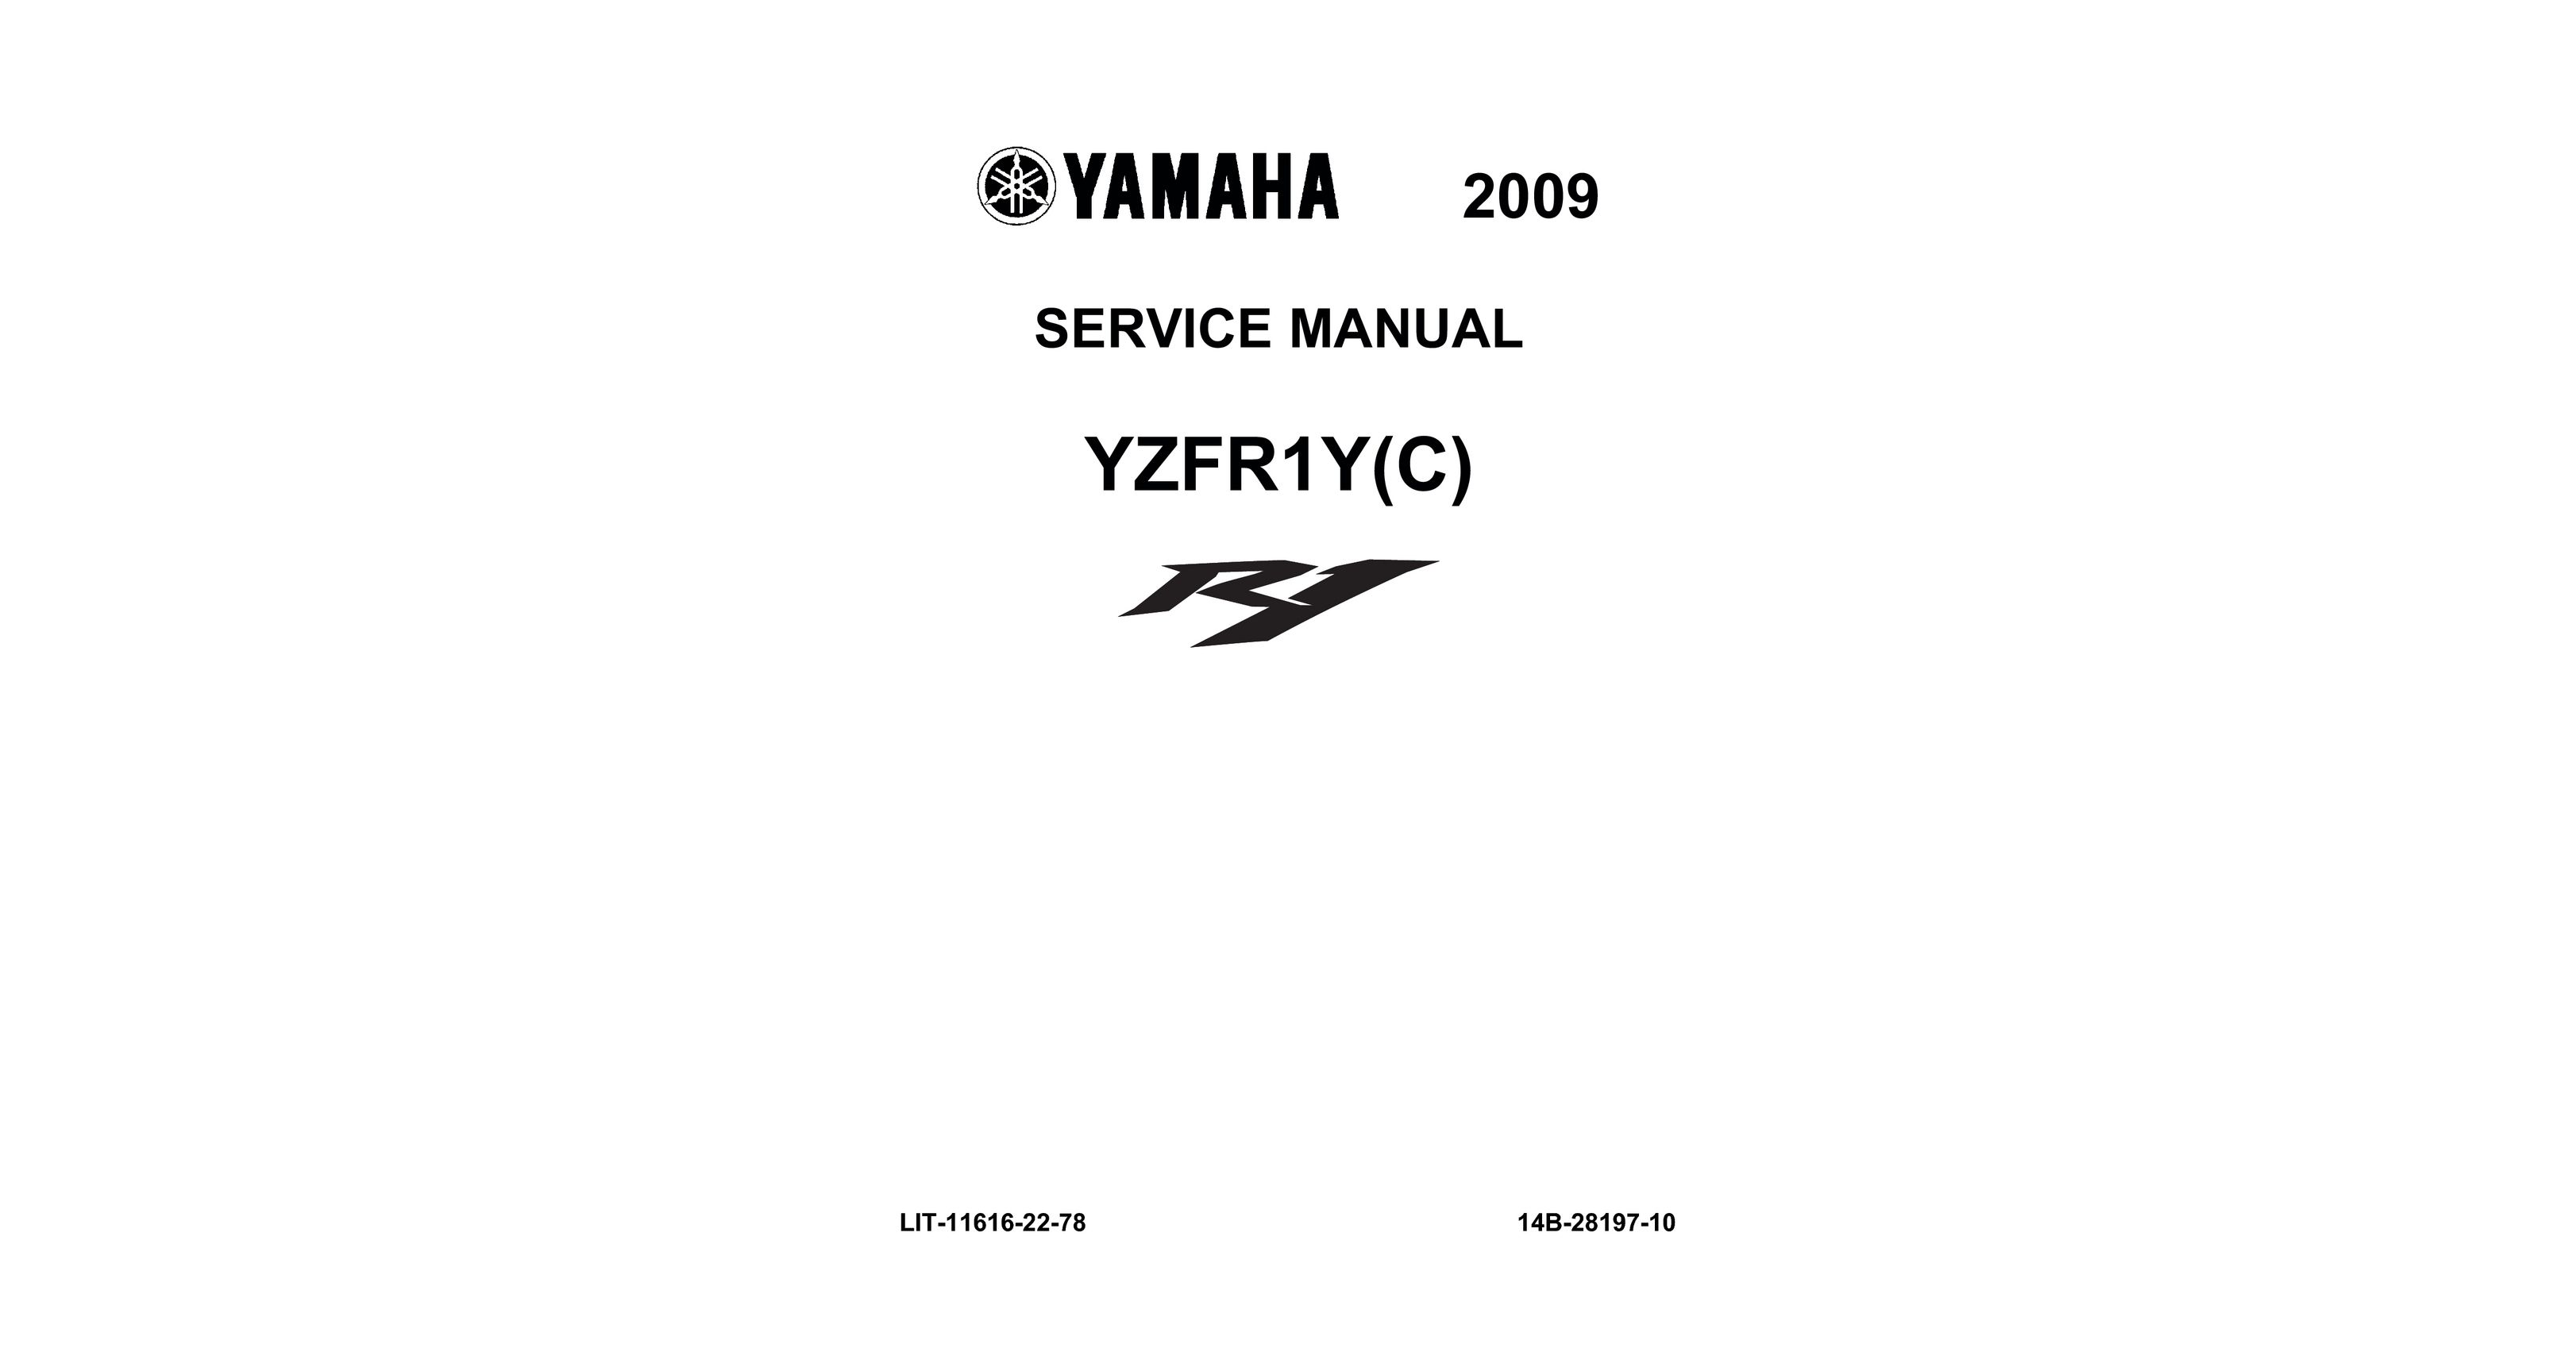 yamaha r1 2009 service manual flat rh viewer zmags com 2013 r1 service manual 2012 yamaha r1 service manual